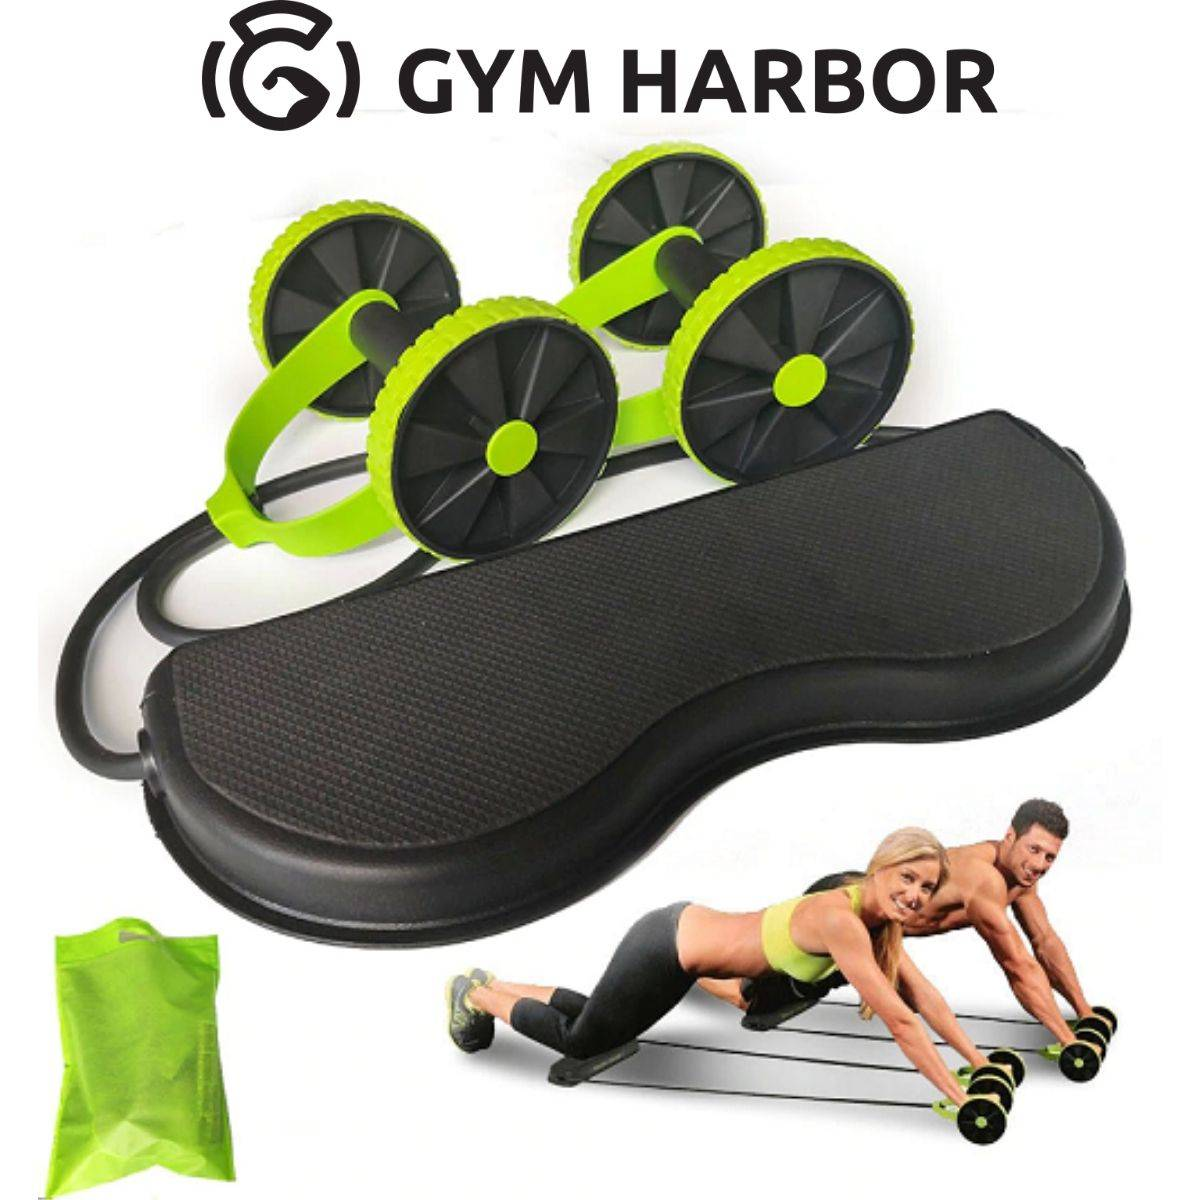 ab roller-ab roller trainer-ab slider workout-ab wheel-abs as seen on tv-best exercises for abs-cardio exercise equipment-power abs-workout stuff-ab roller wheel